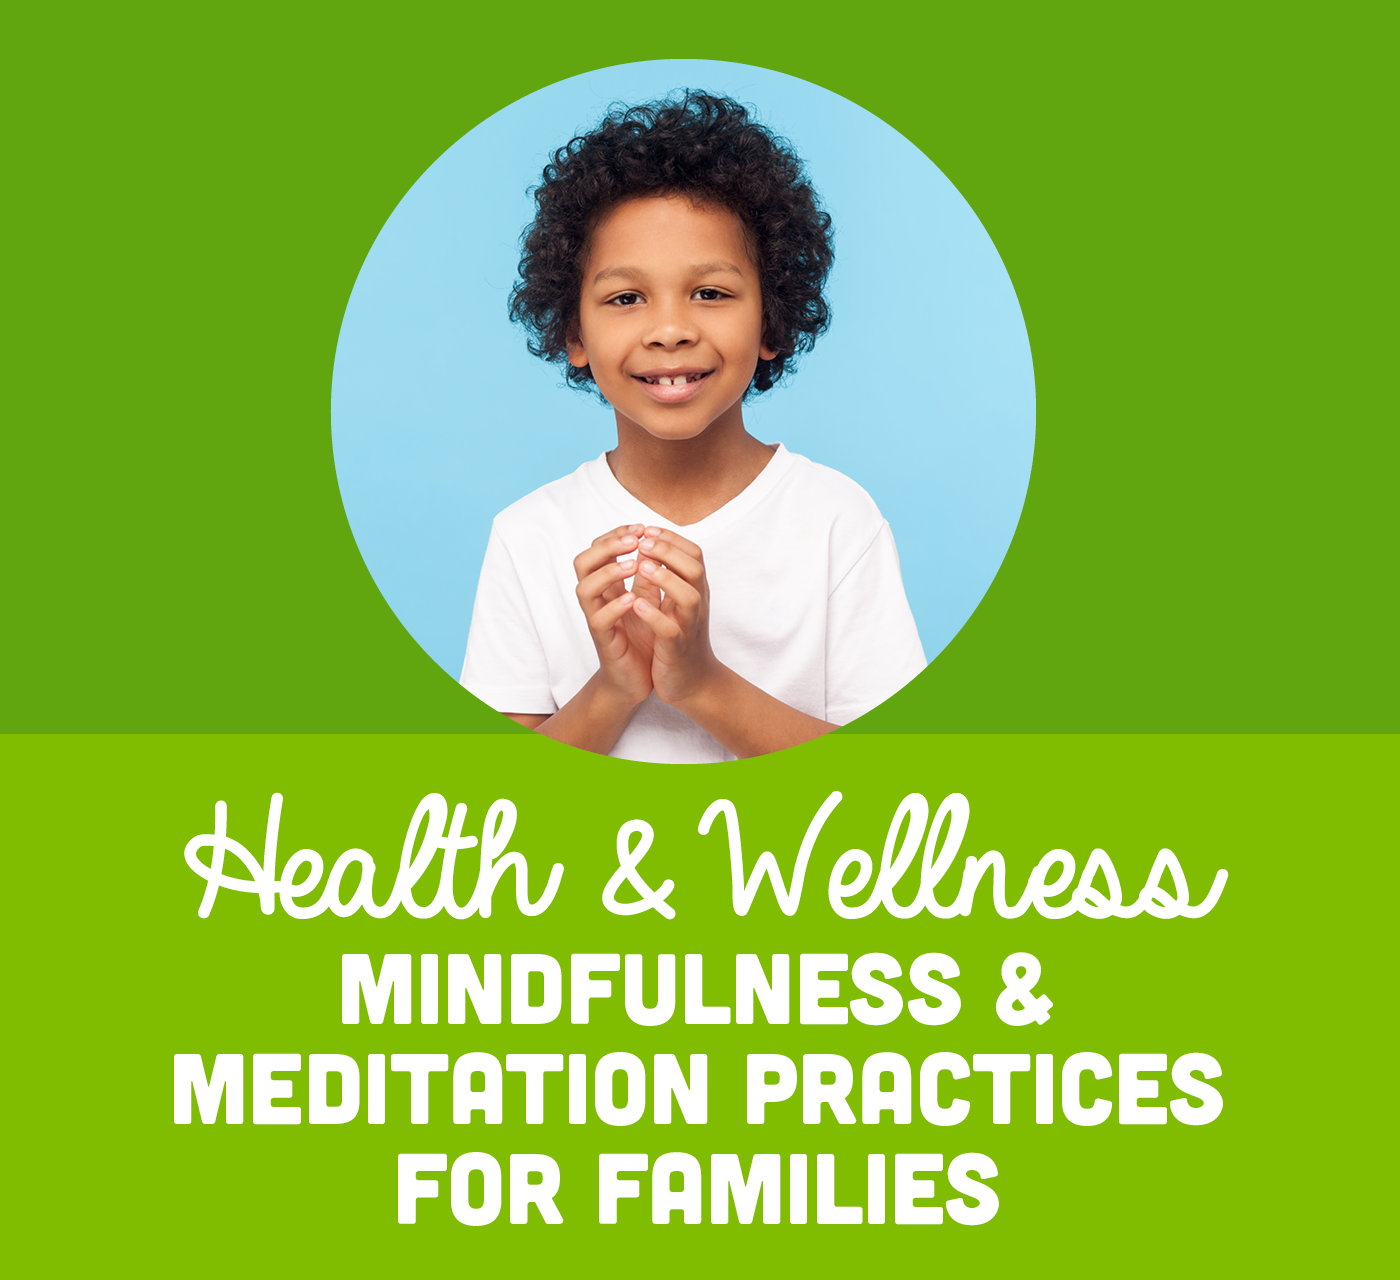 Mindfulness & Meditation Practices for Families